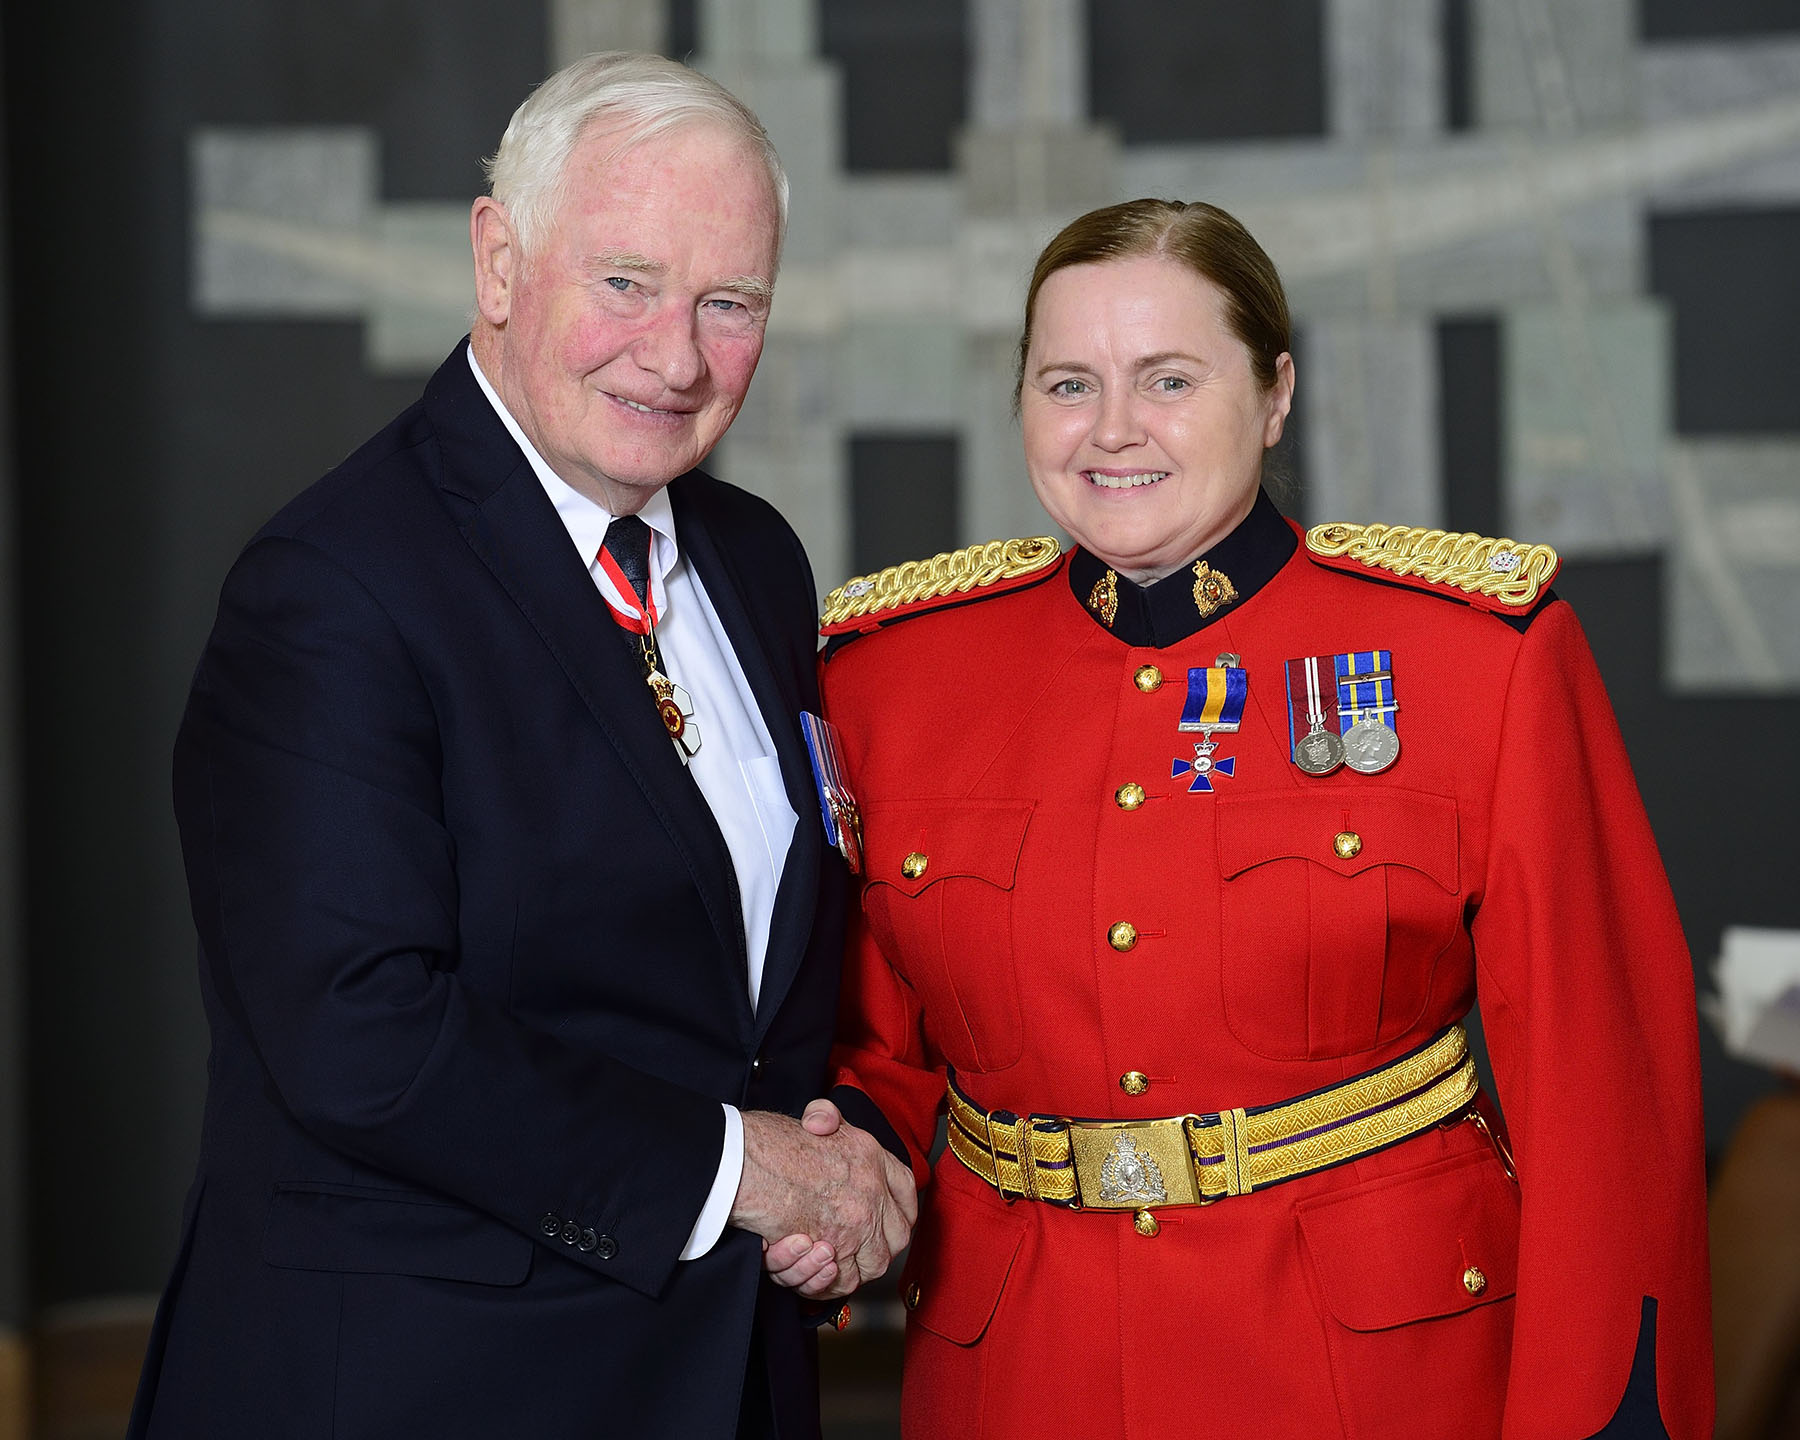 His Excellency invested Staff Sergeant Lauren Weare in the Order of Merit of the Police Forces for the strong relationships she has built between the RCMP and the communities she serves, notably among First Nations citizens and women victims of violence.